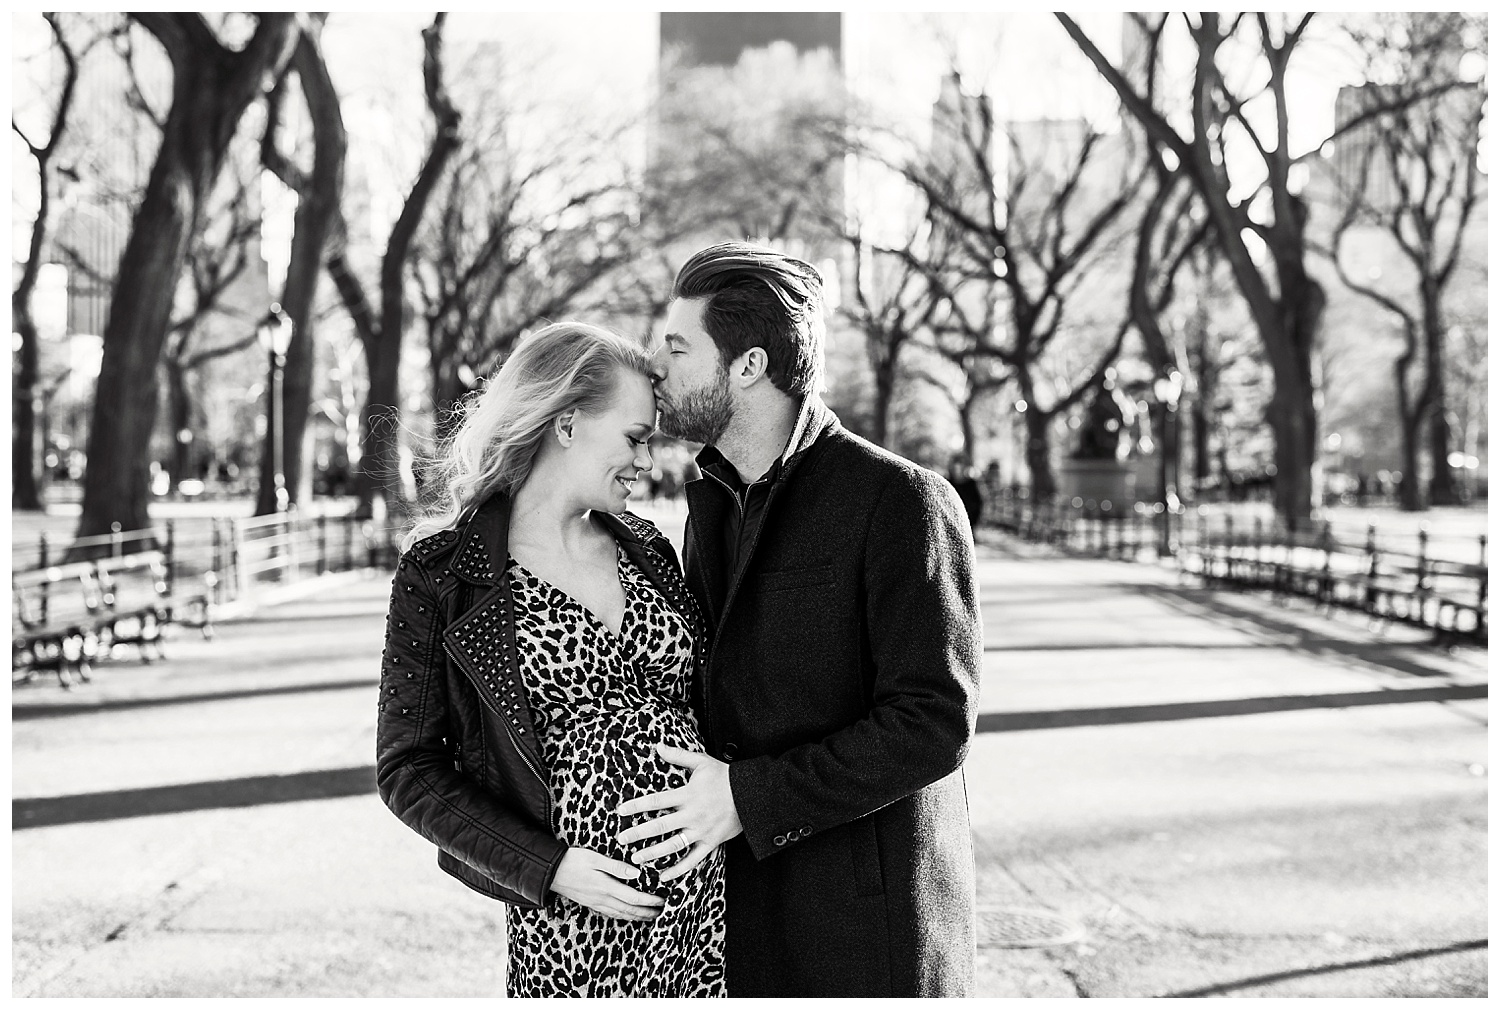 Krista_Maternity_Photos_Central_Park_NYC_Apollo_Fields_89.jpg